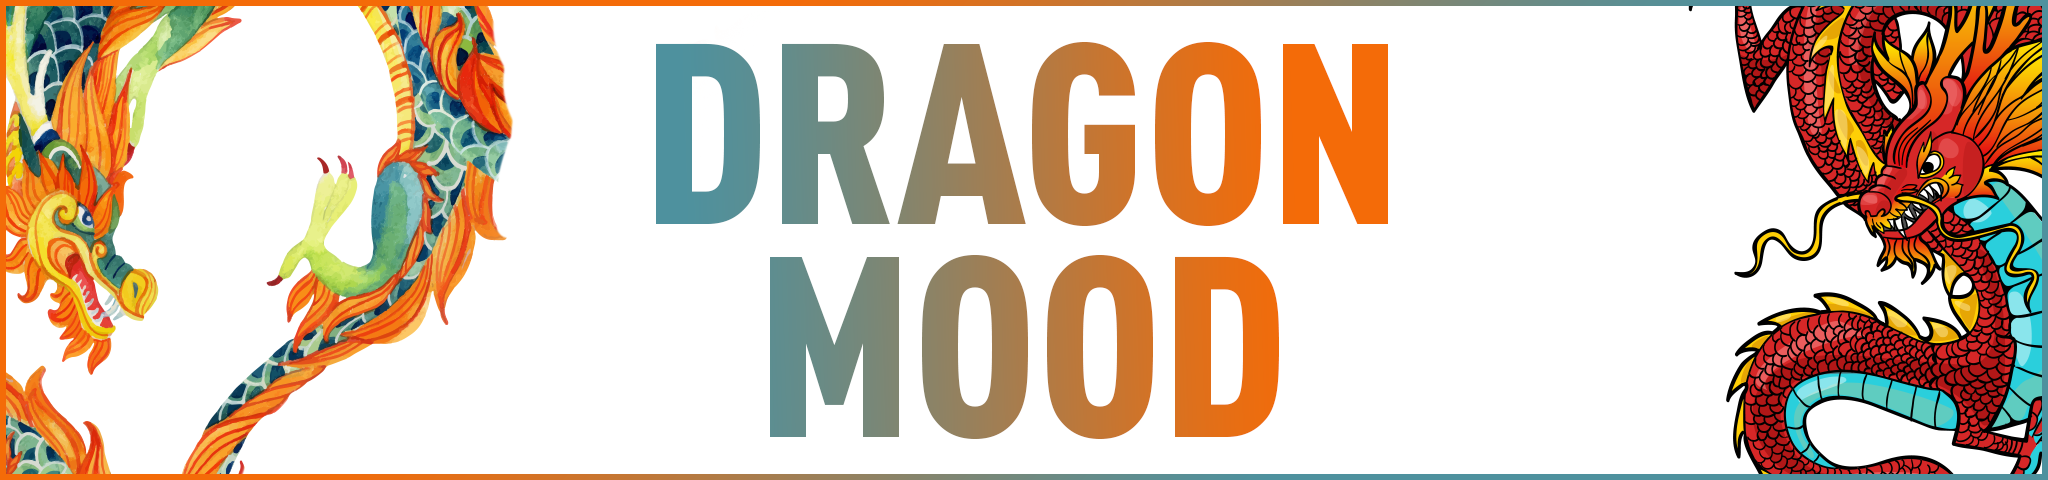 Dragon Mood Collection- Orologi Unisex di Doodle the Original